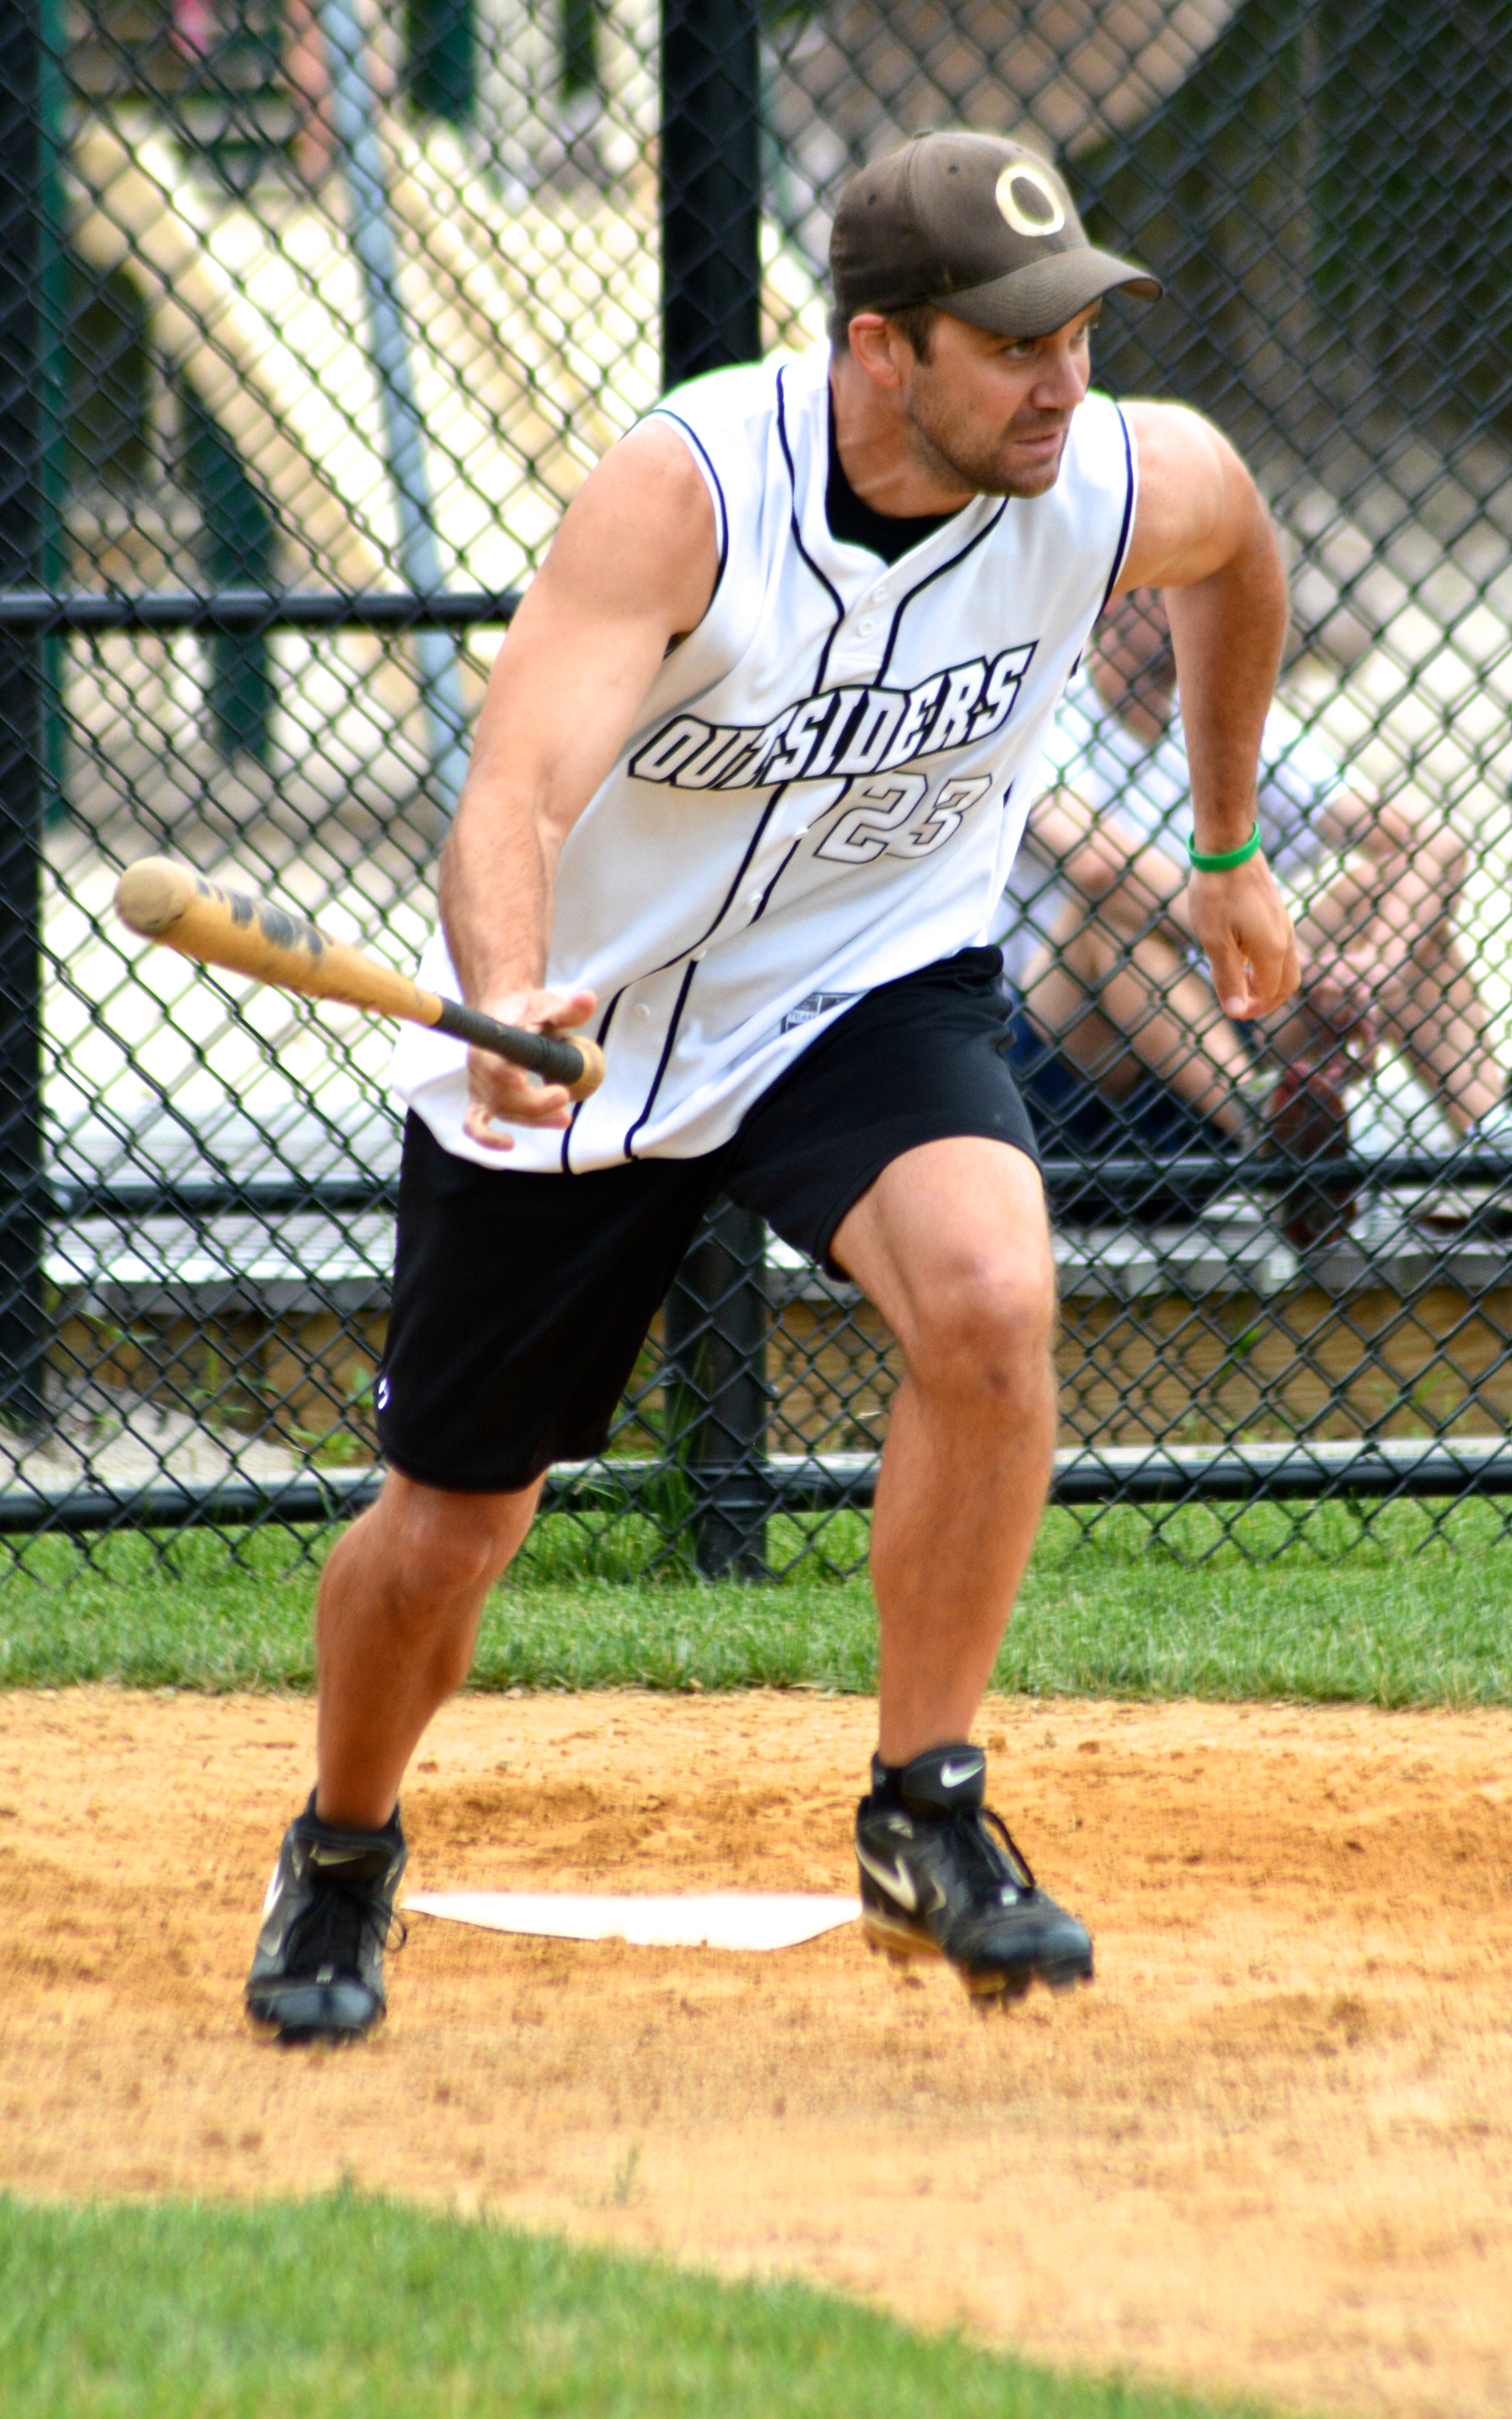 Sean Boyle running to first base.